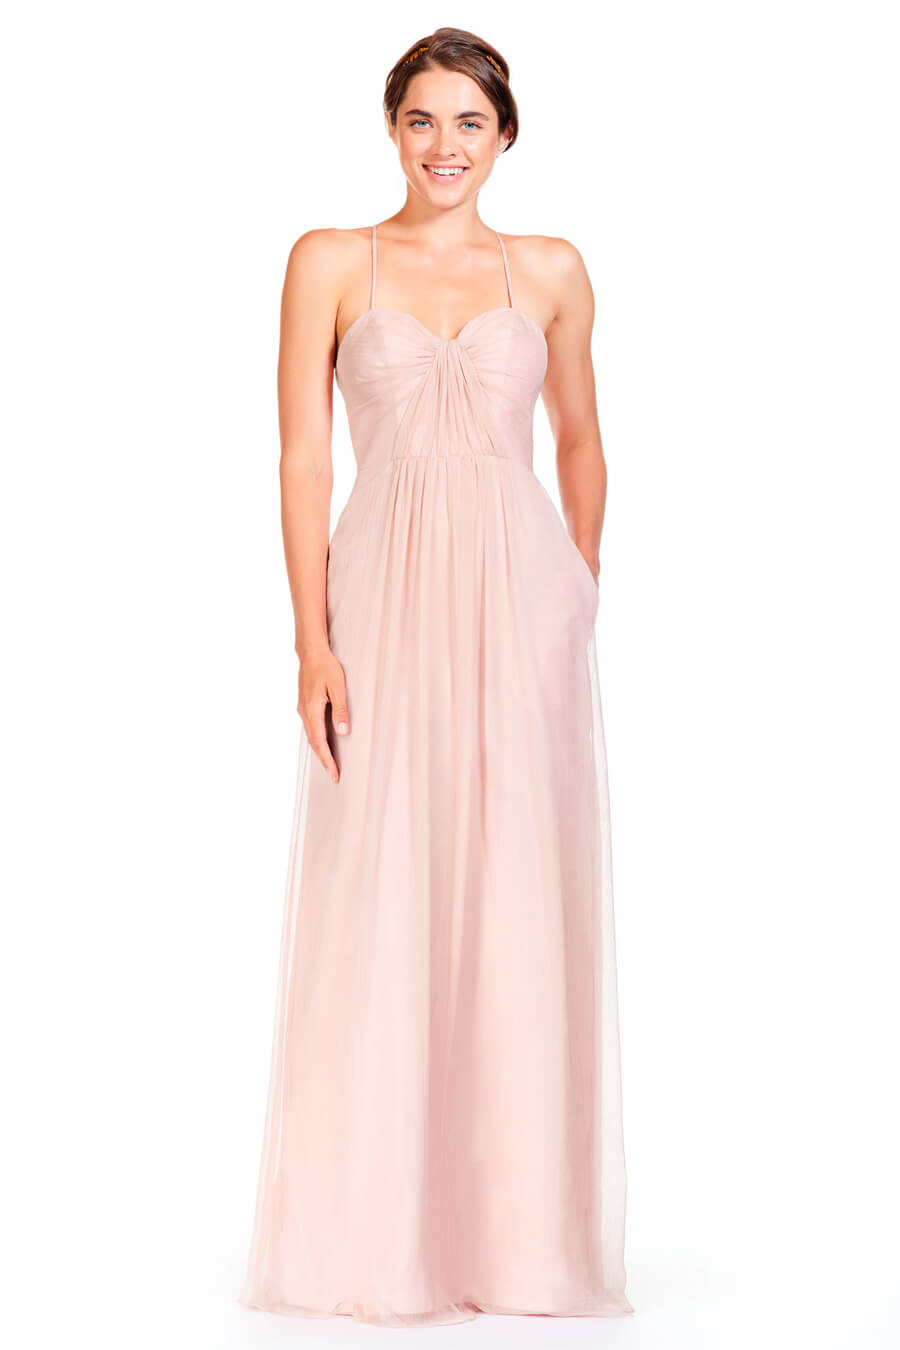 STYLE: 1836 | Bridesmaid Dresses, Evening Gowns & Flower Girl ...